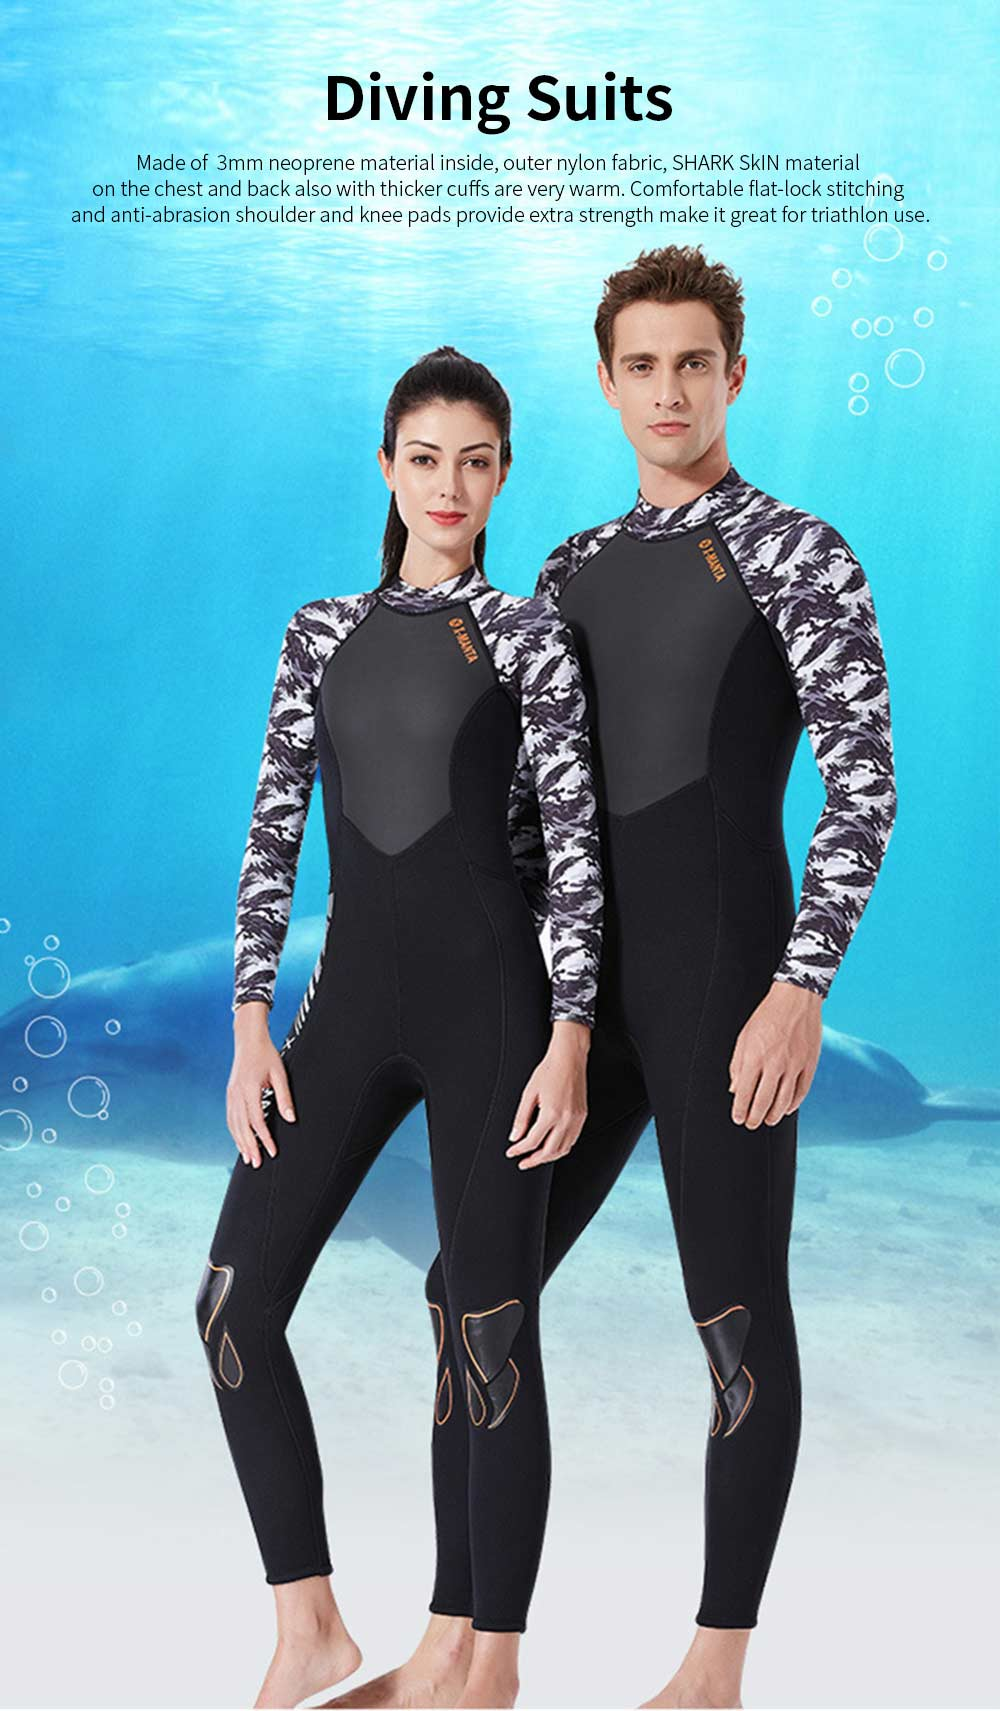 2019 New Diving Suits 3mm Neoprene One Piece Sport Skin Spearfishing Full Suit for Men and Women Snorkeling Scuba Diving Surfing 0